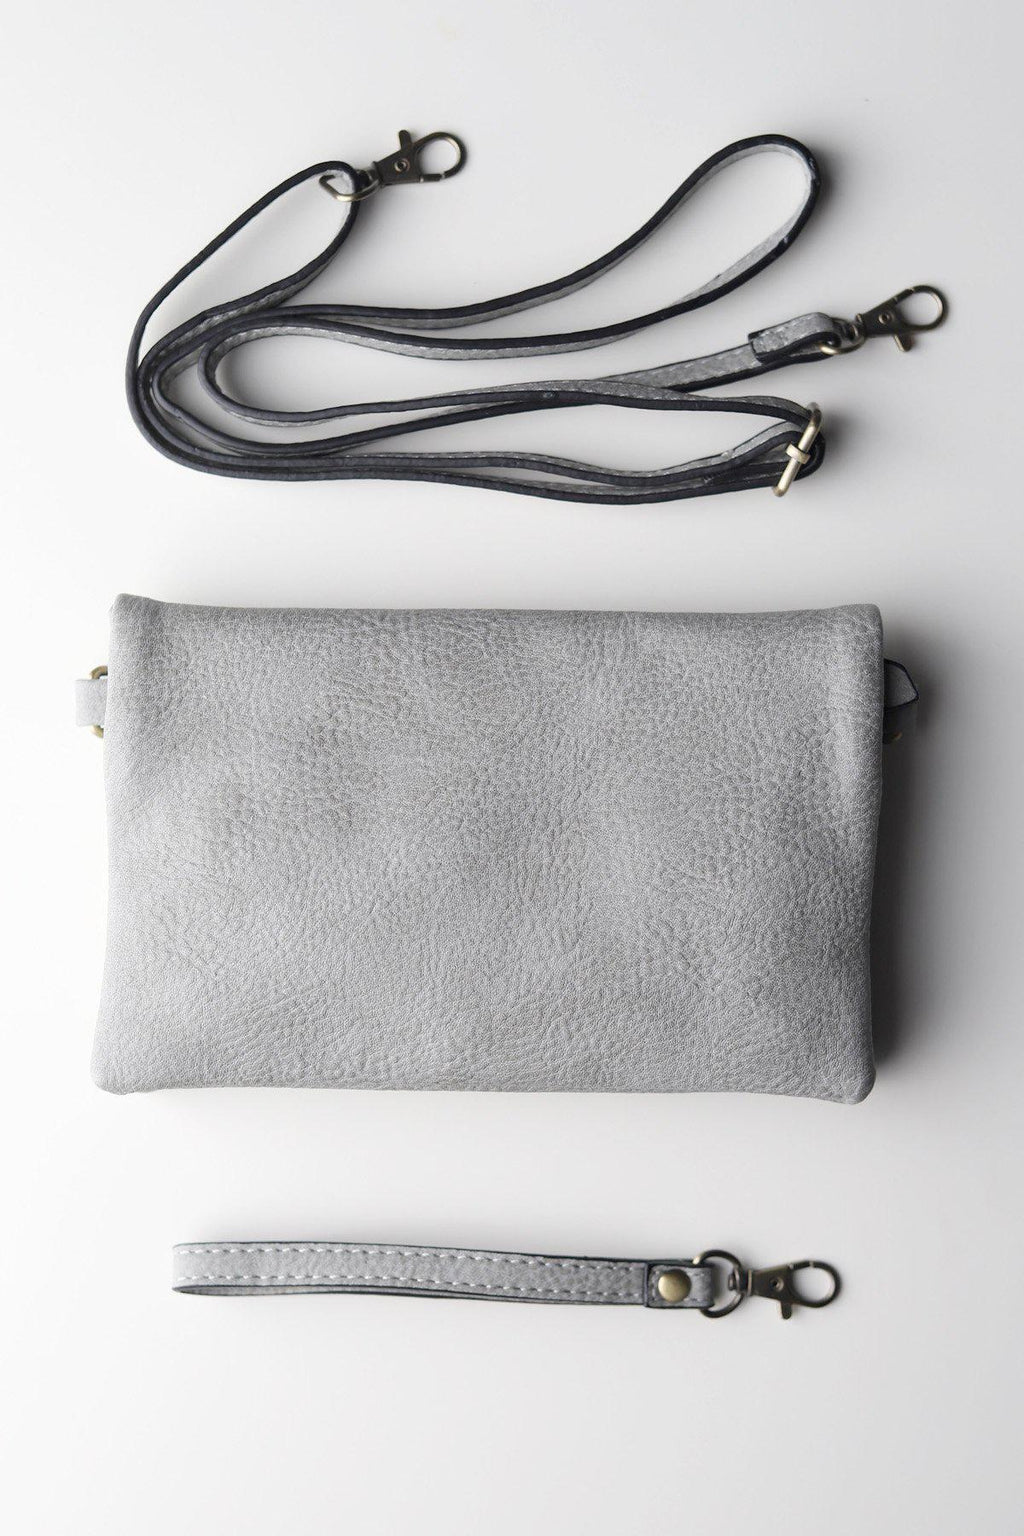 Crossbody Clutch / Lt Grey - Gallery 512 Boutique